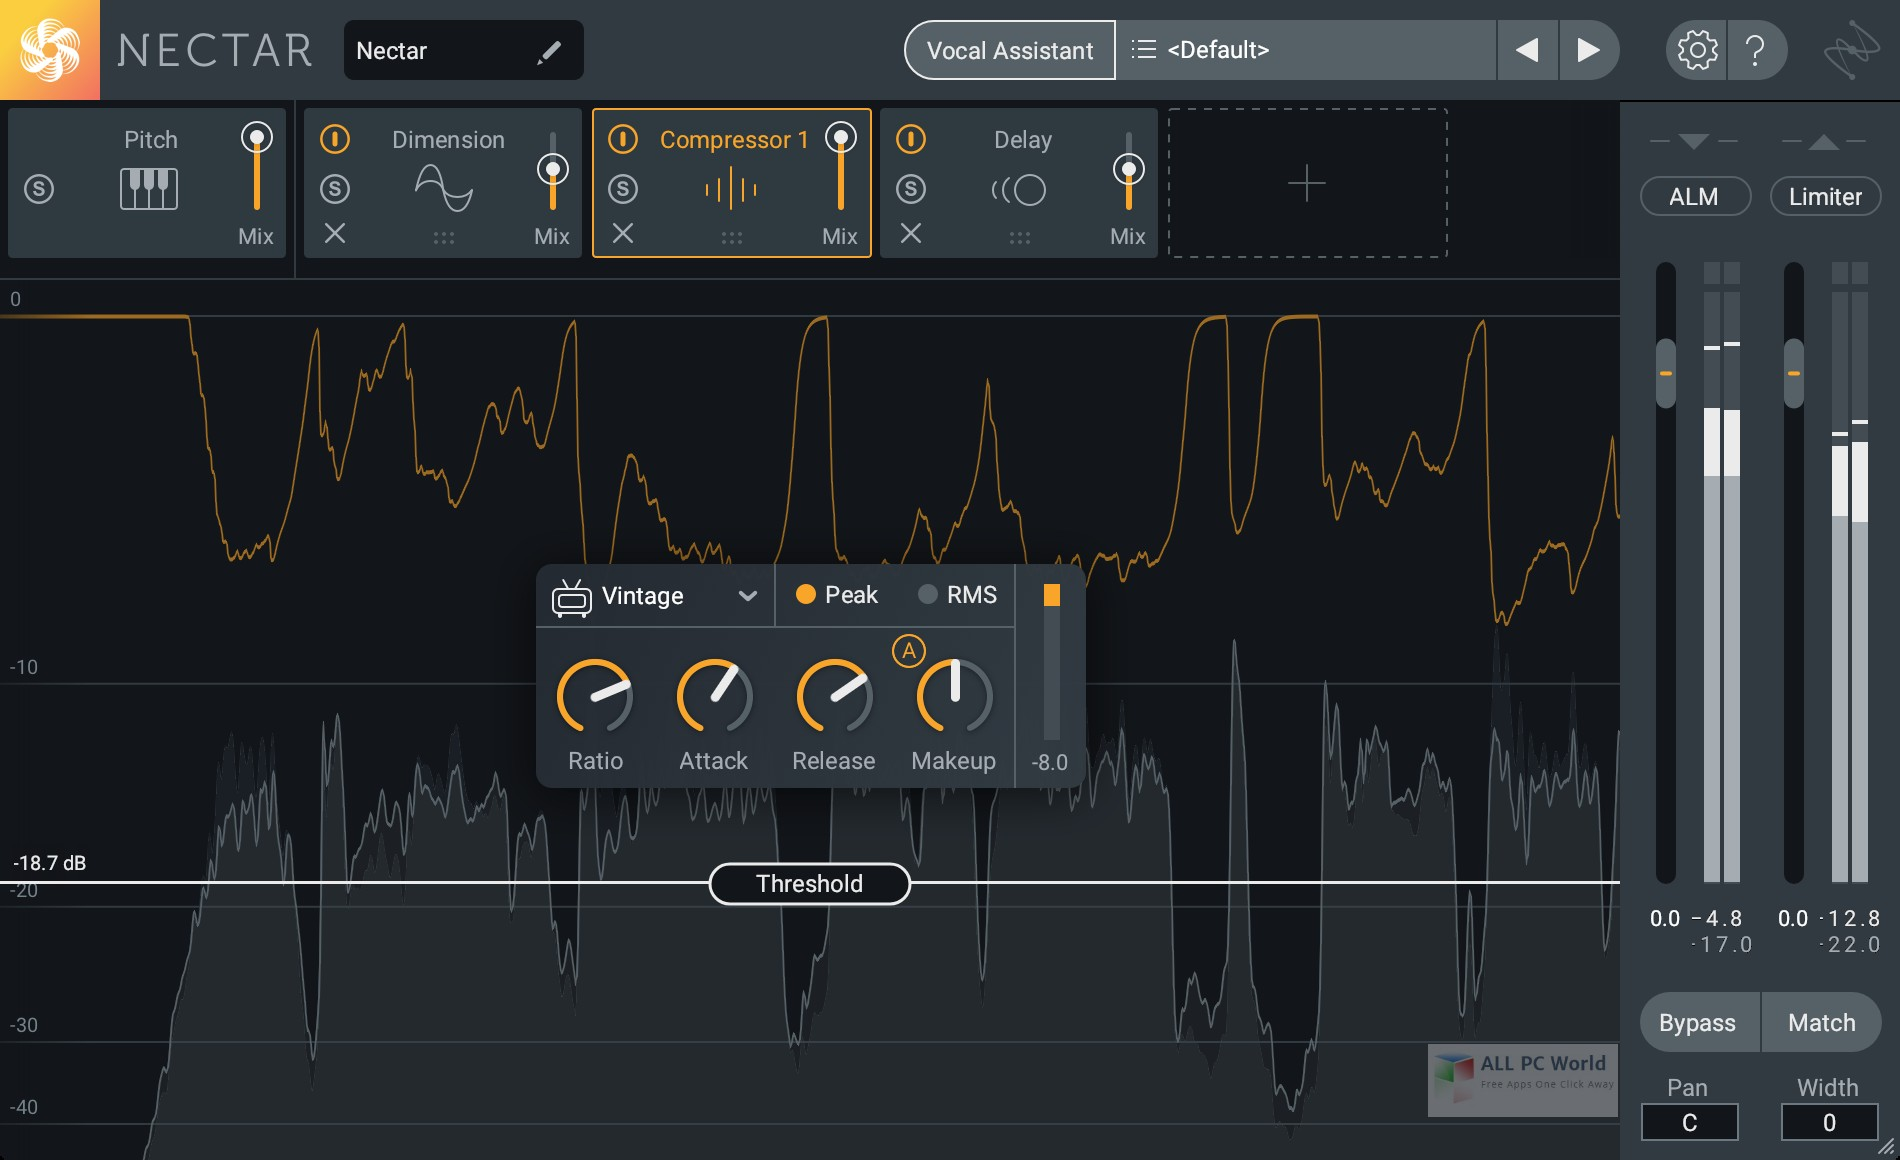 iZotope Nectar 3 Free Download - ALL PC World